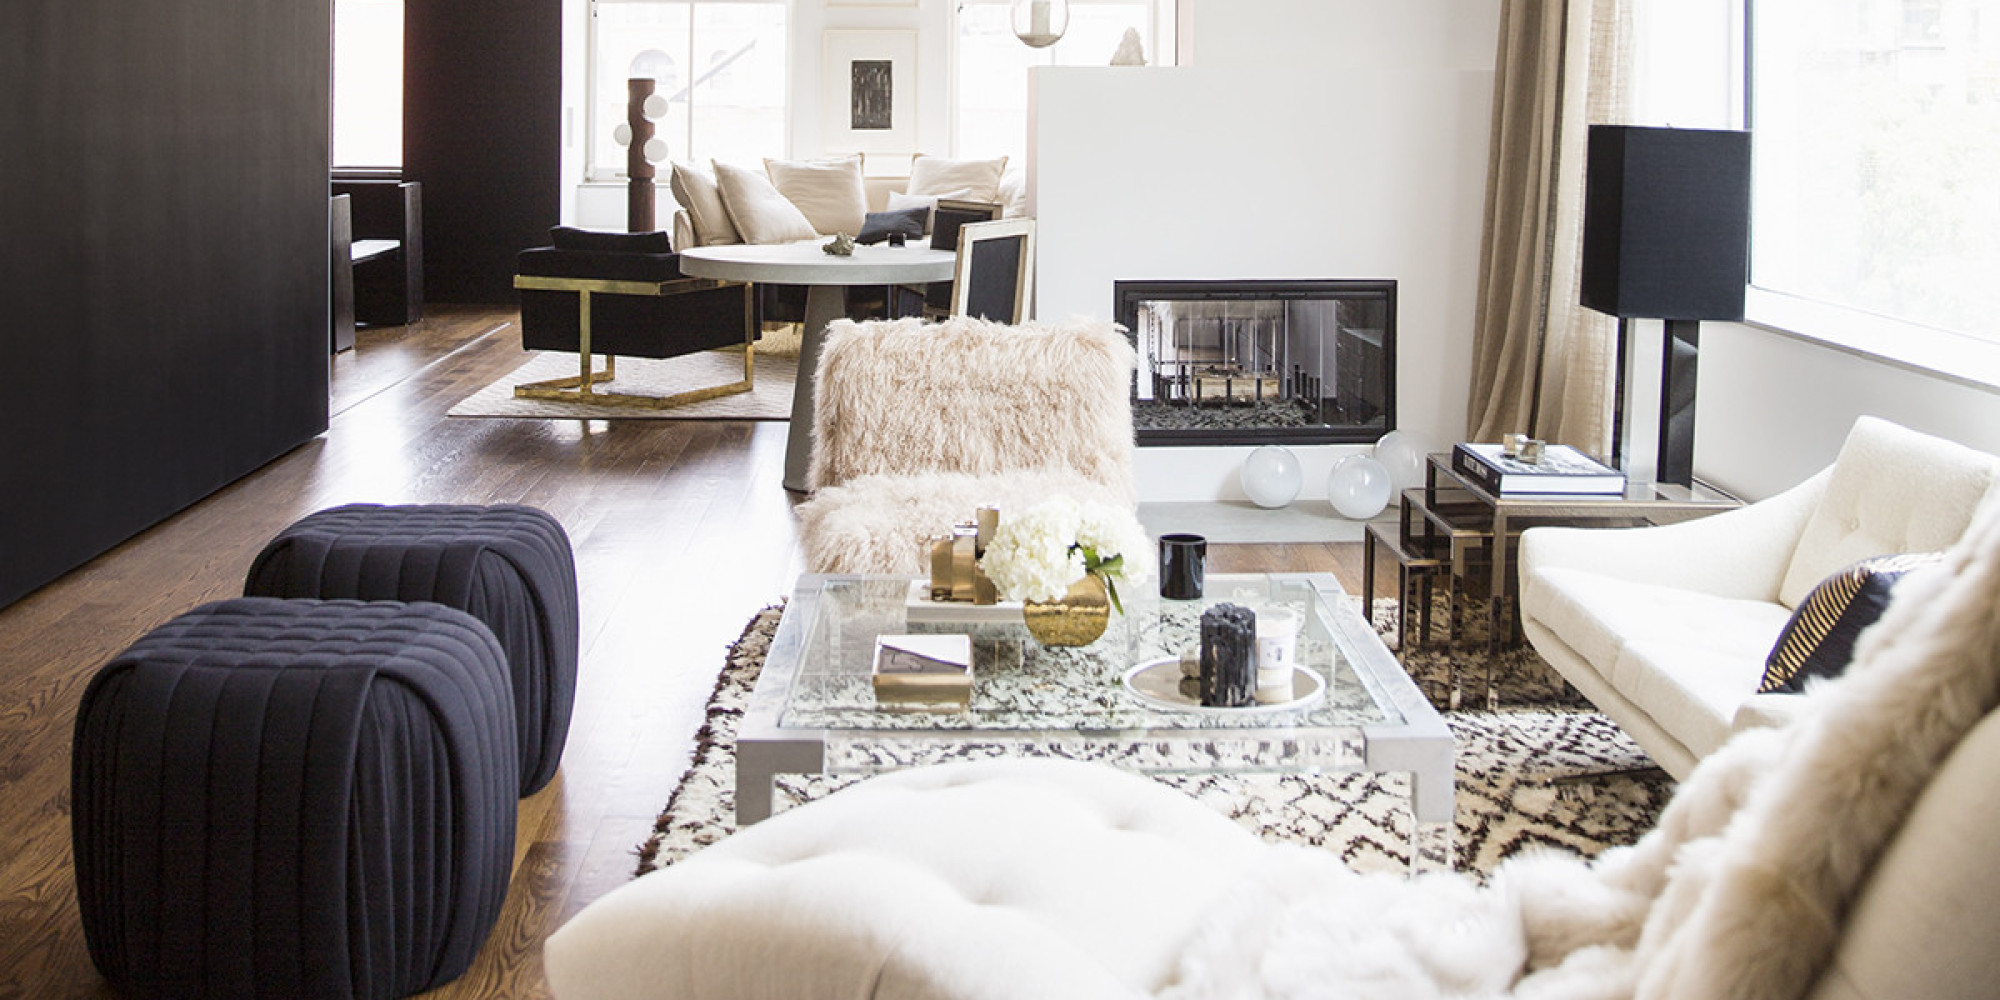 Inspirations from Nate Berkus luxurious interiors Luxurious Interiors Inspired by Louis-Era French Design Inspirations from Nate Berkus luxurious interiors Luxurious Interiors Inspired by Louis-Era French Design Inspirations from Nate Berkus